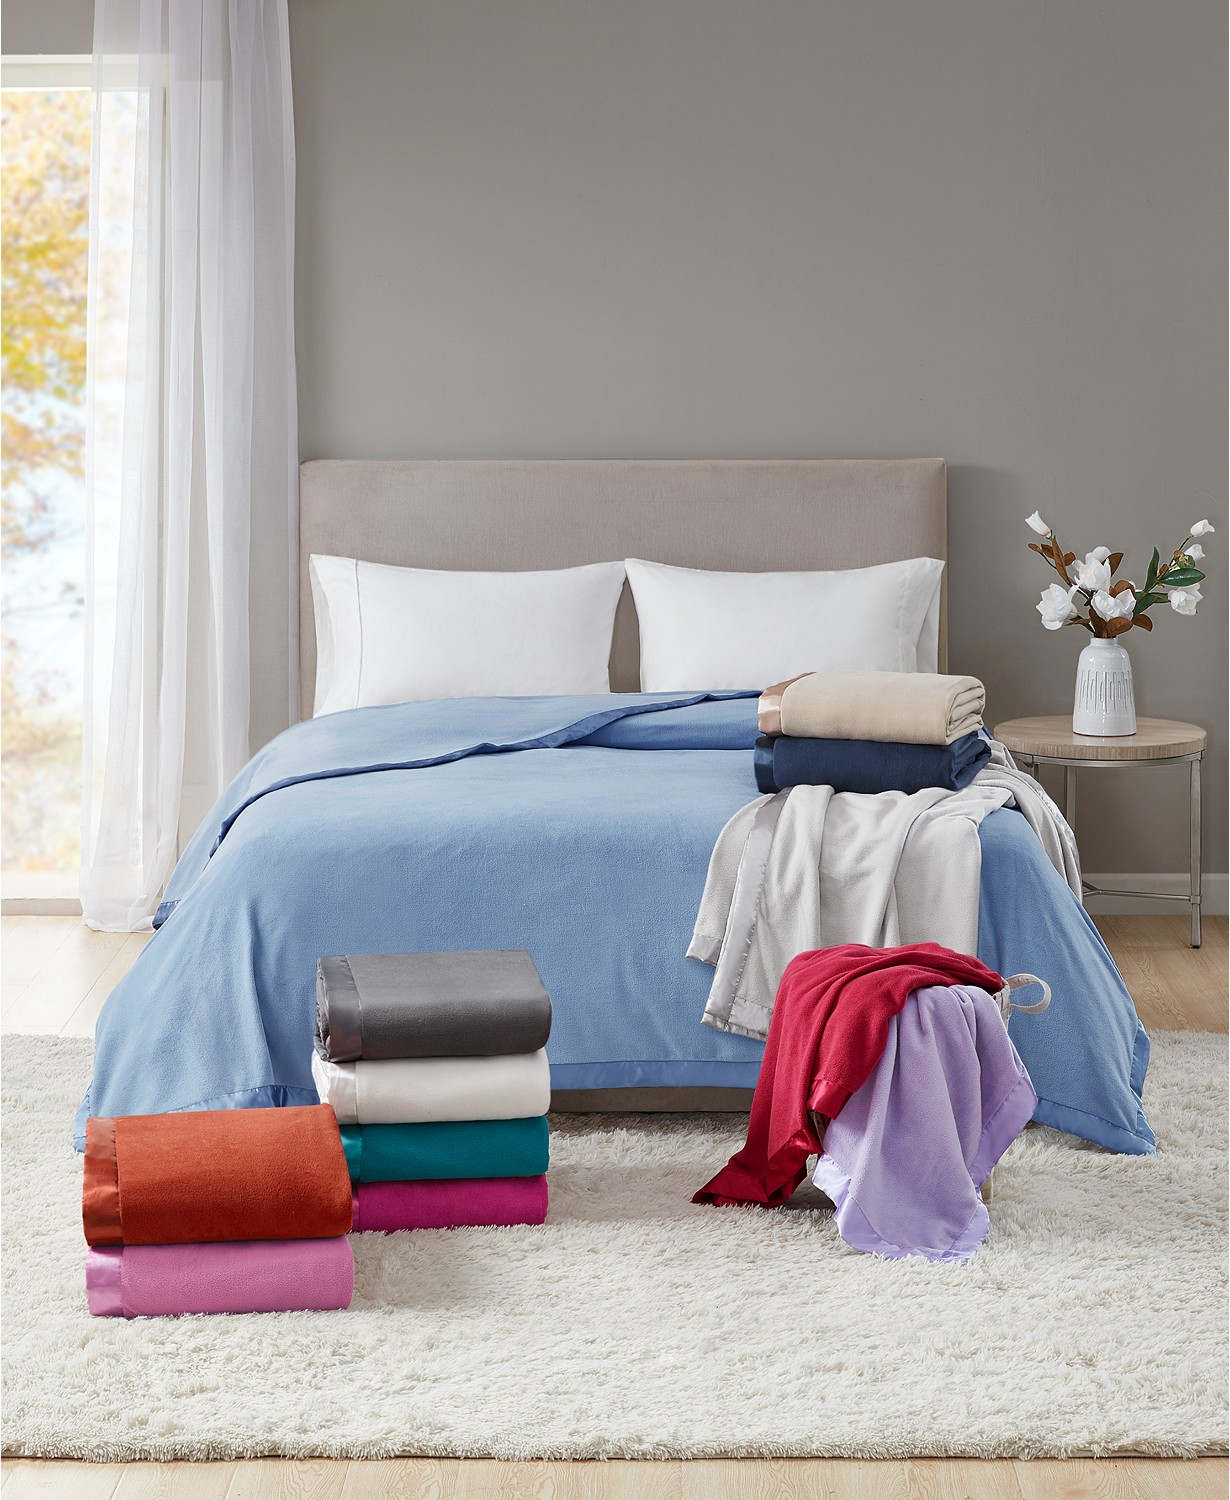 martha stewart fleece blanket picture on bed